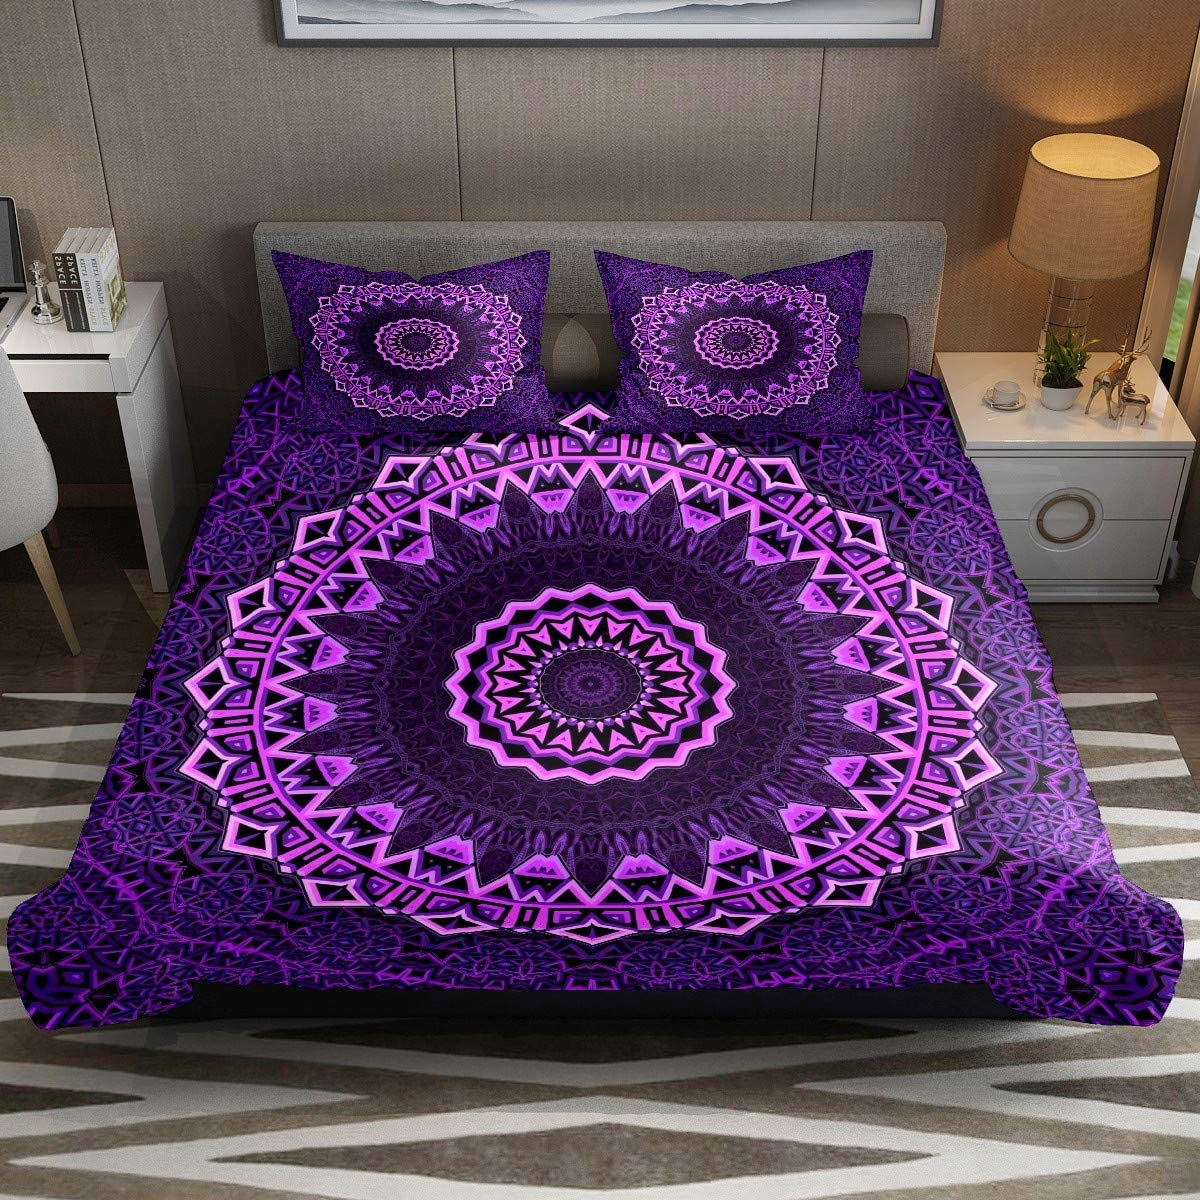 Luxury Mandala Vibrant Purple Comforter Cover Set CK Size 3pcs Duvet Cover Bedding Sets & Collections with Zipper Ties for Woman Teens Kids Modern Customize (1 Quilt Cover +2 Pillowcases)